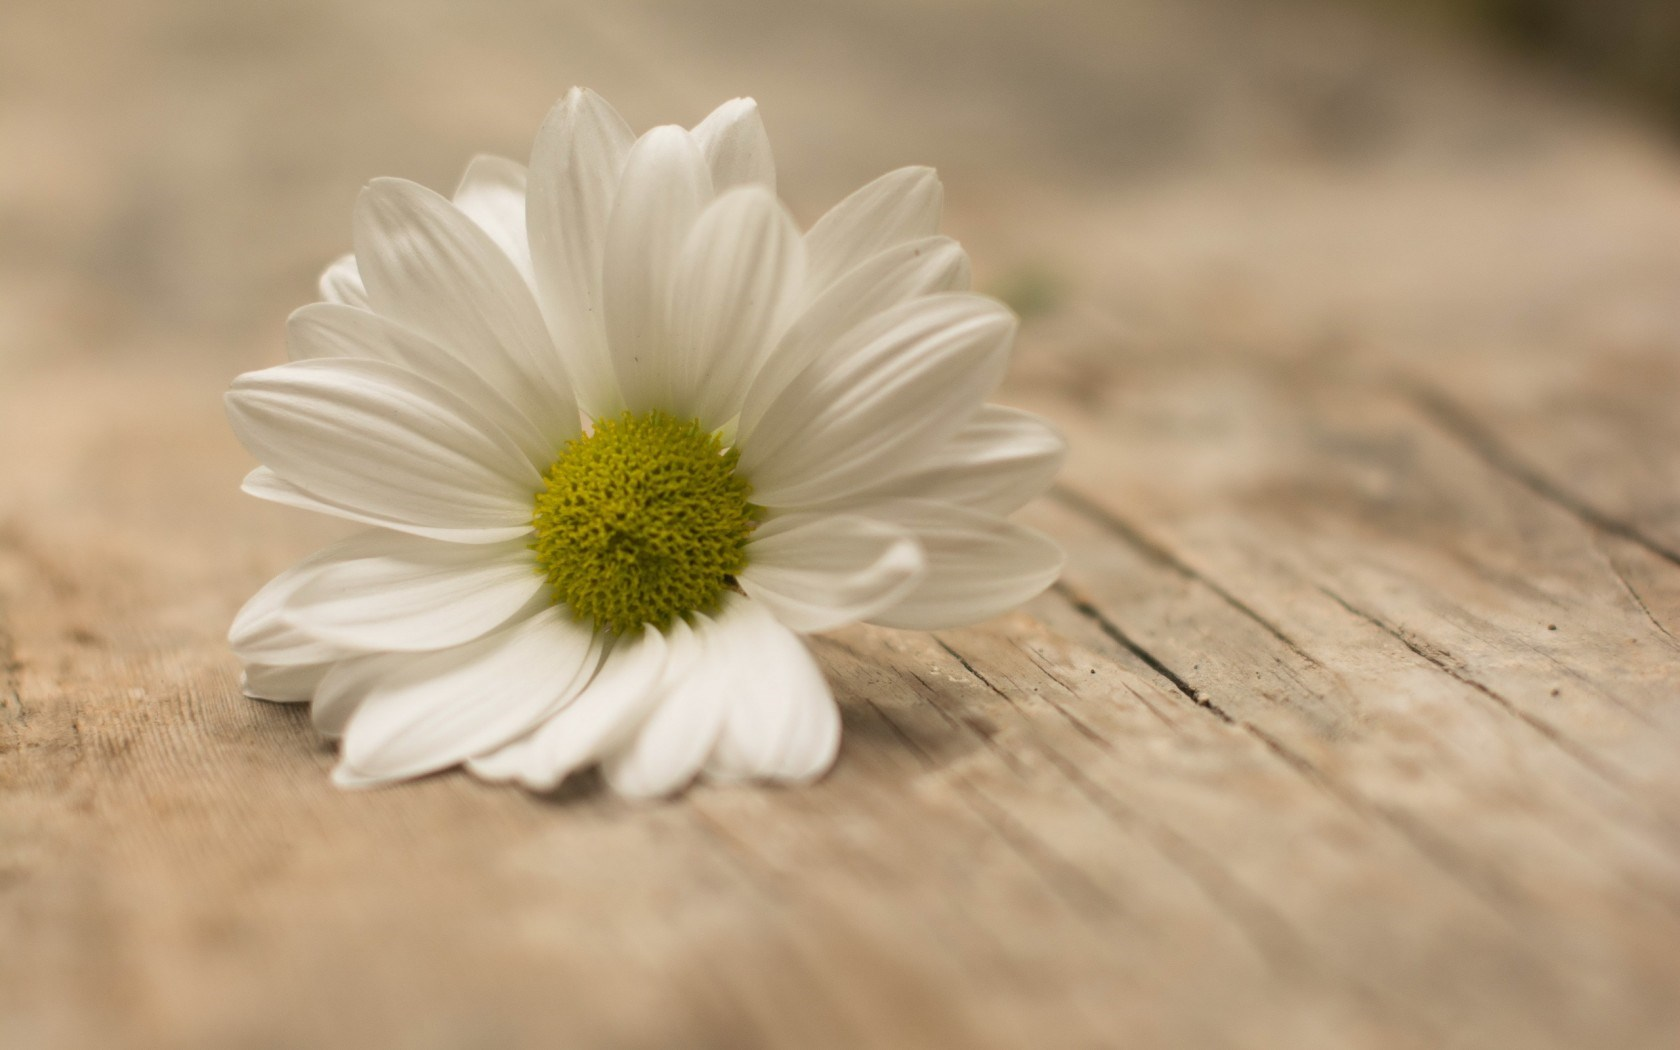 3d Live Wallpapers Download For Iphone Picture Of Daisies Hd Desktop Wallpapers 4k Hd